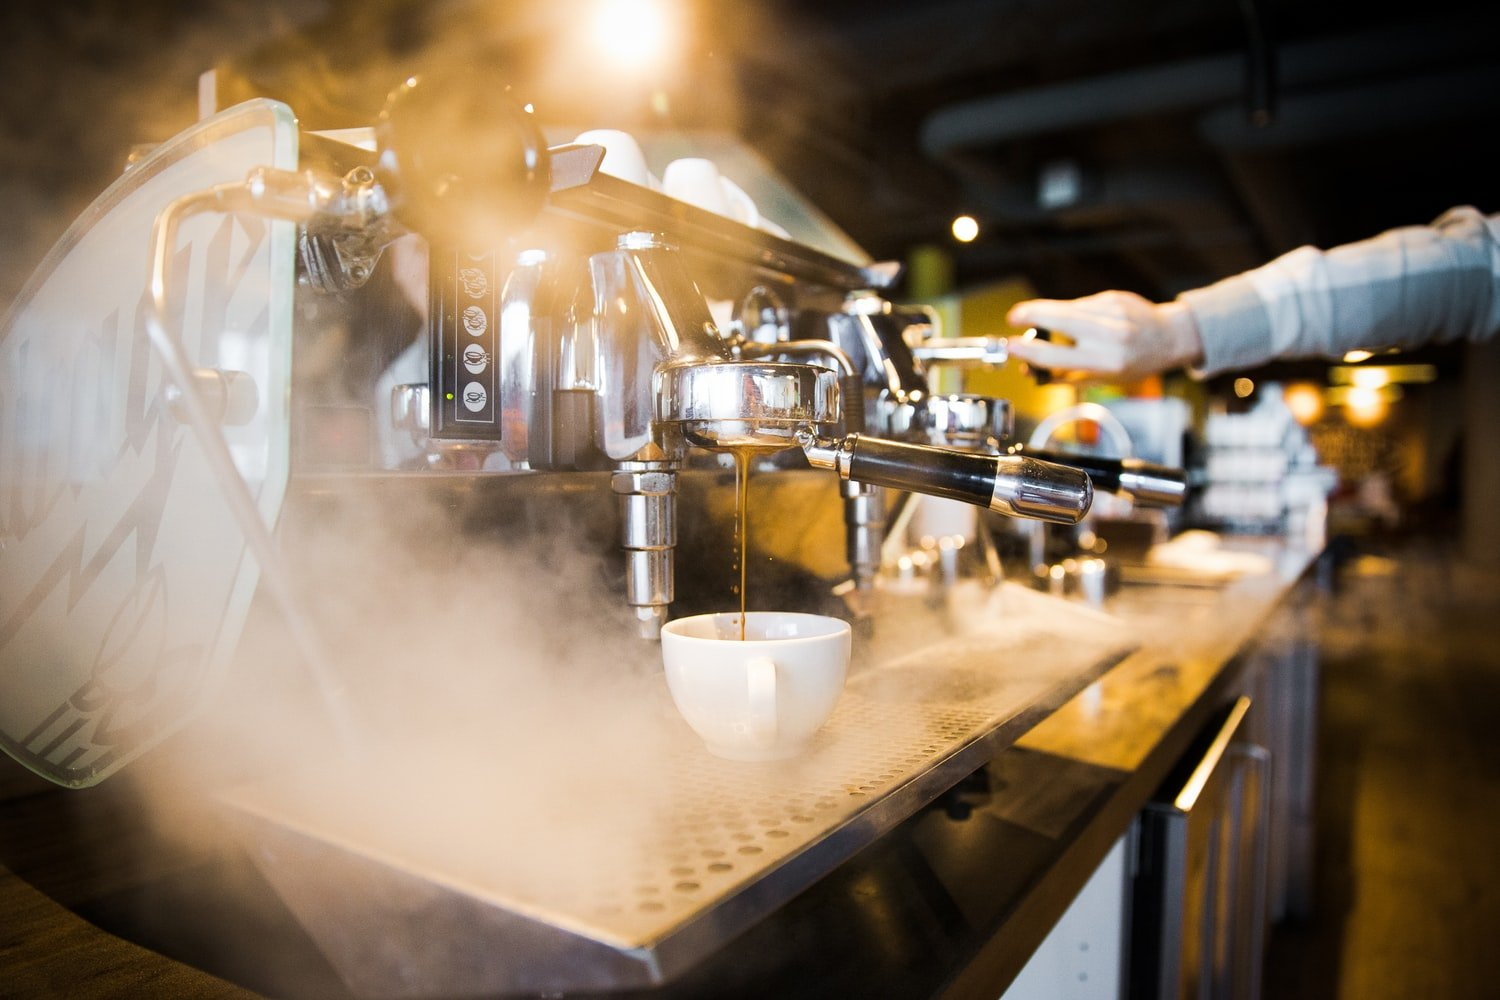 Definitive Guide to Cleaning and Maintaining Espresso Machine